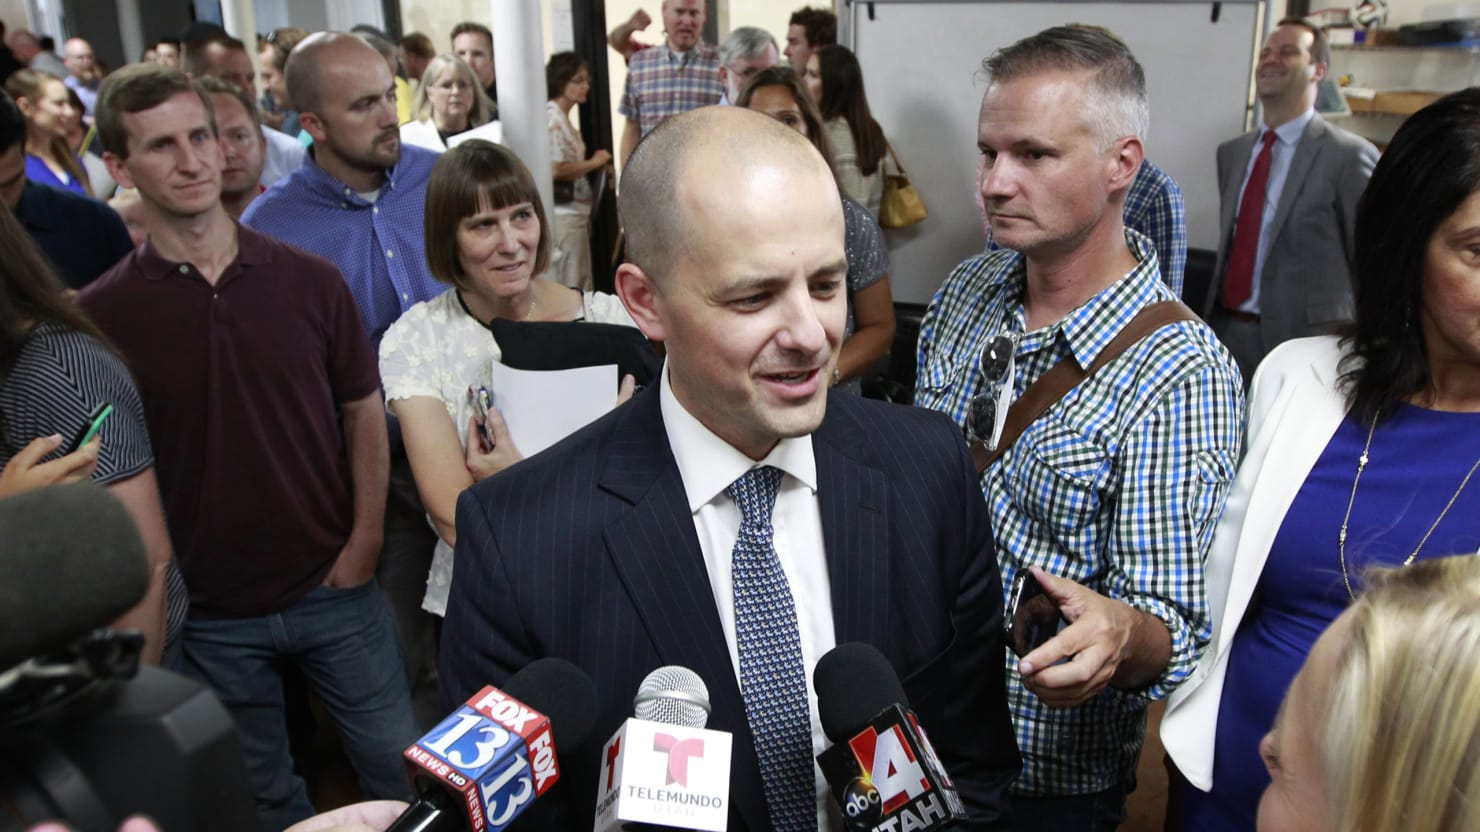 Utah Rejects Donald Trump's Advances, as Evan McMullin Emerges as the Conservative Alternative